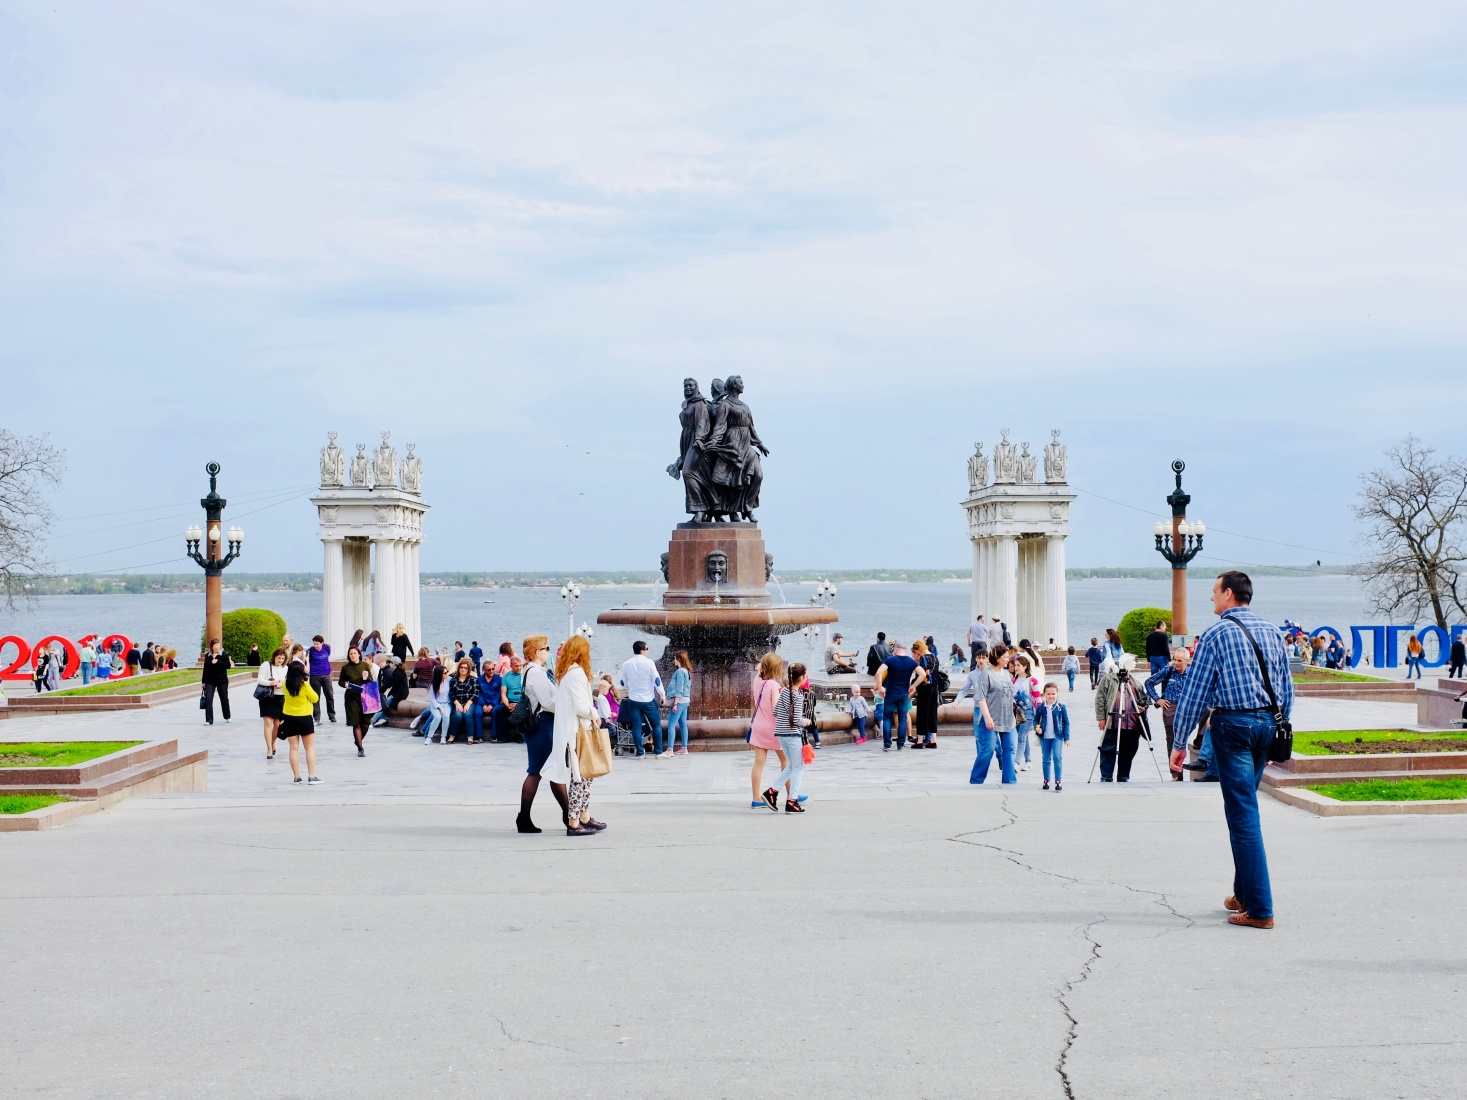 Statues, waterfront, and locals at the riverfront promenade in Volgograd, Russia.